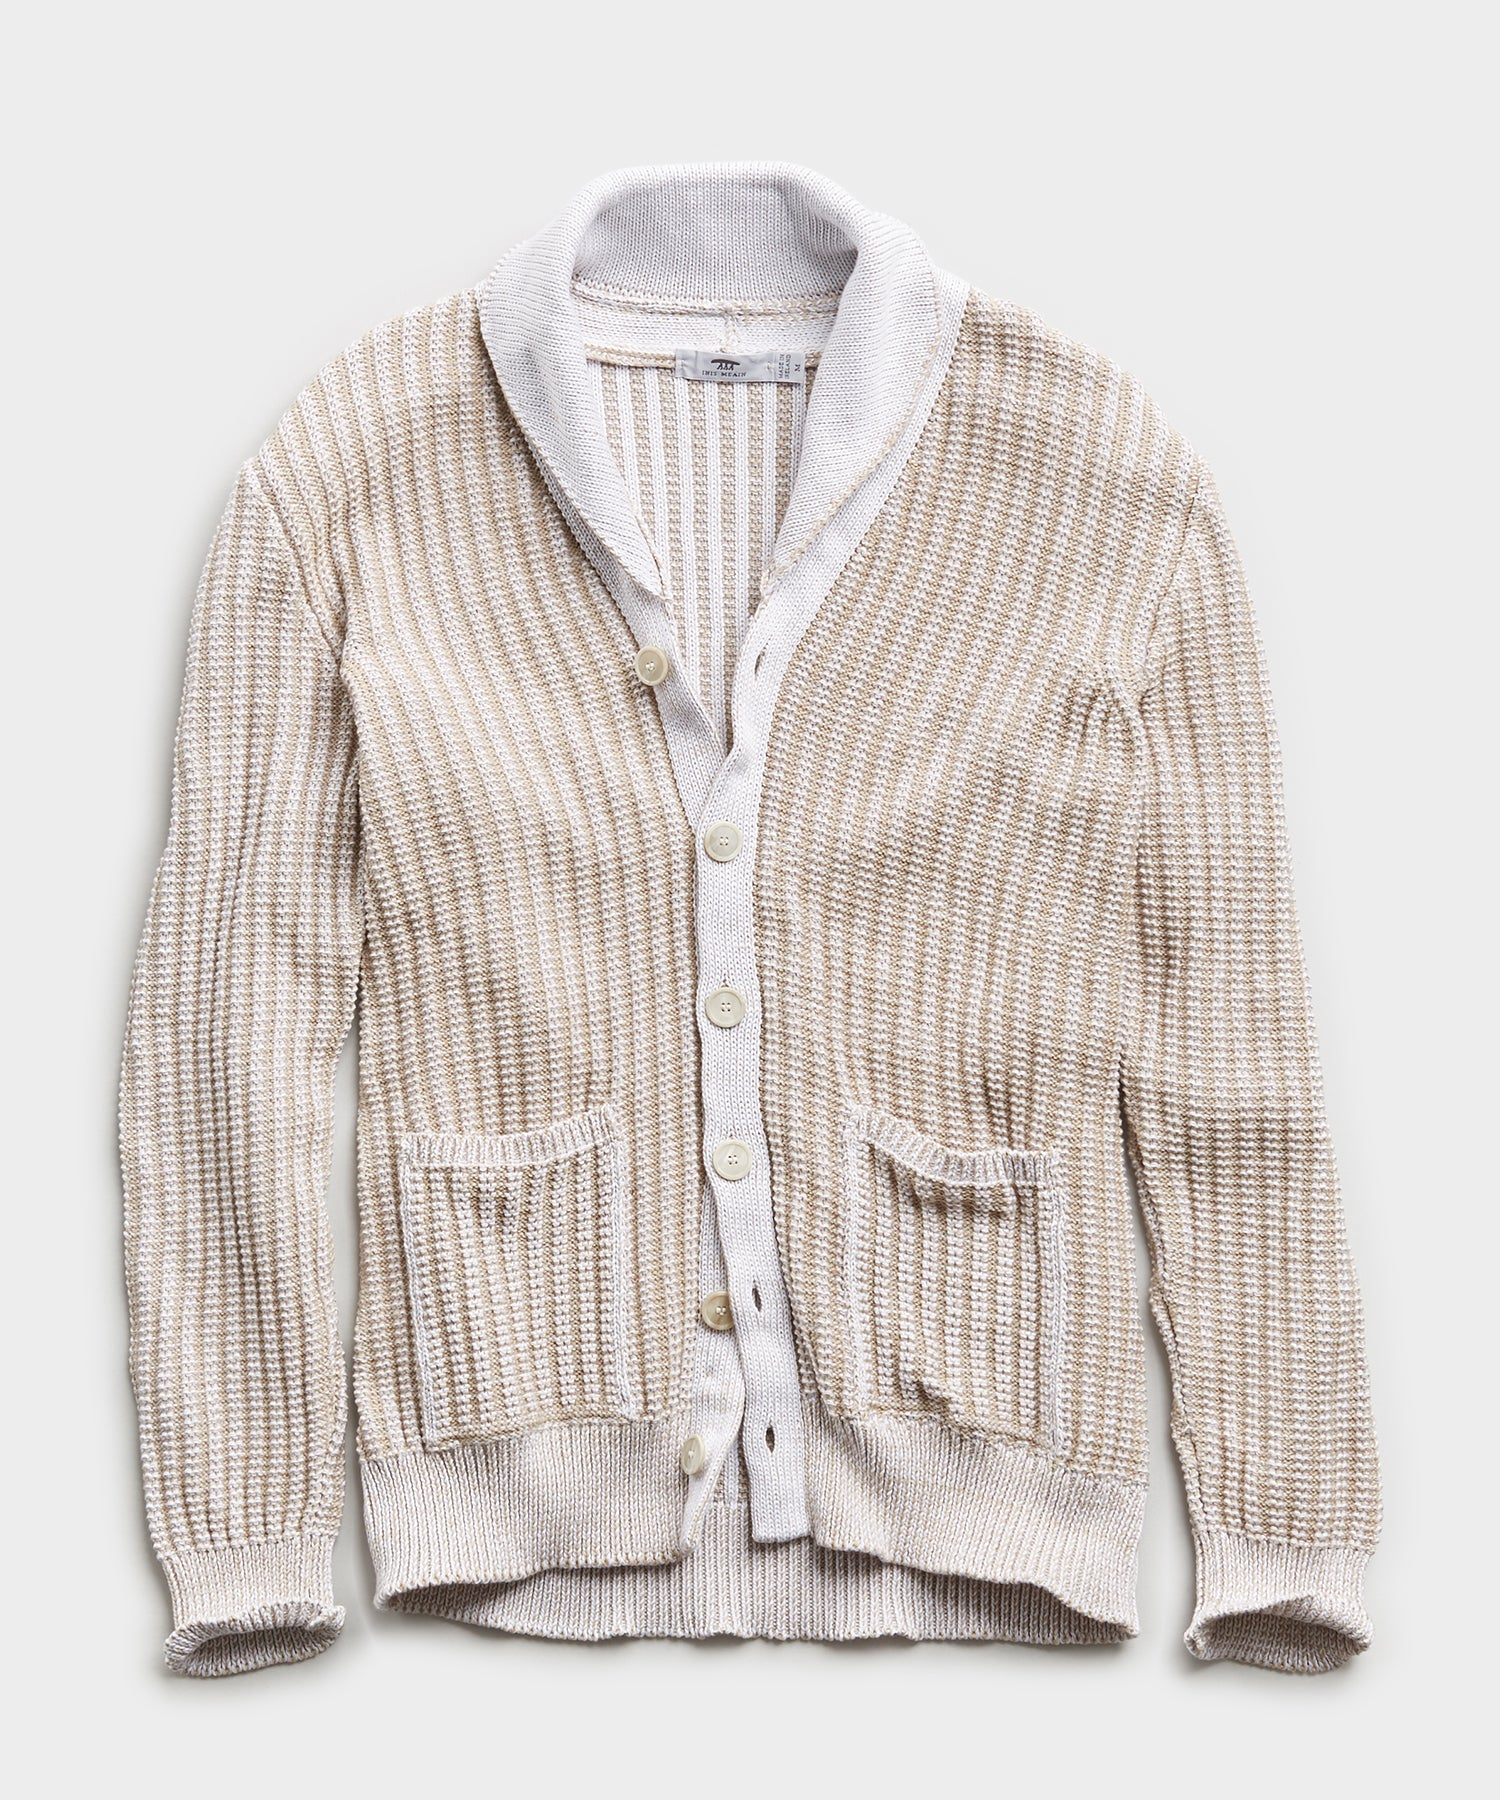 Inis Meain Beach Cardigan in Ivory